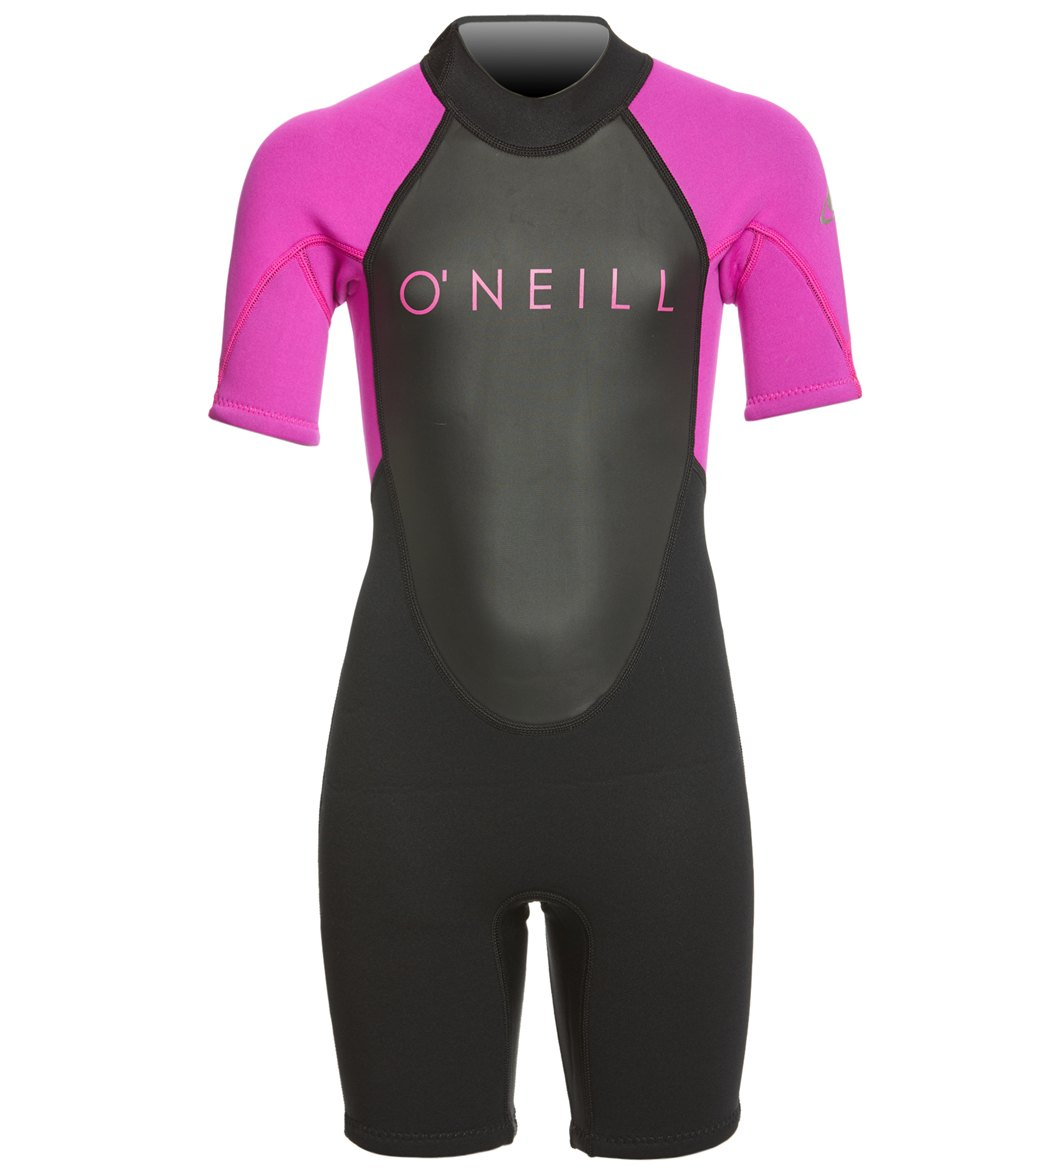 O Neill Youth 2MM Reactor II Short Sleeve Back Zip Spring Suit at  SwimOutlet.com - Free Shipping 00f9a33f2